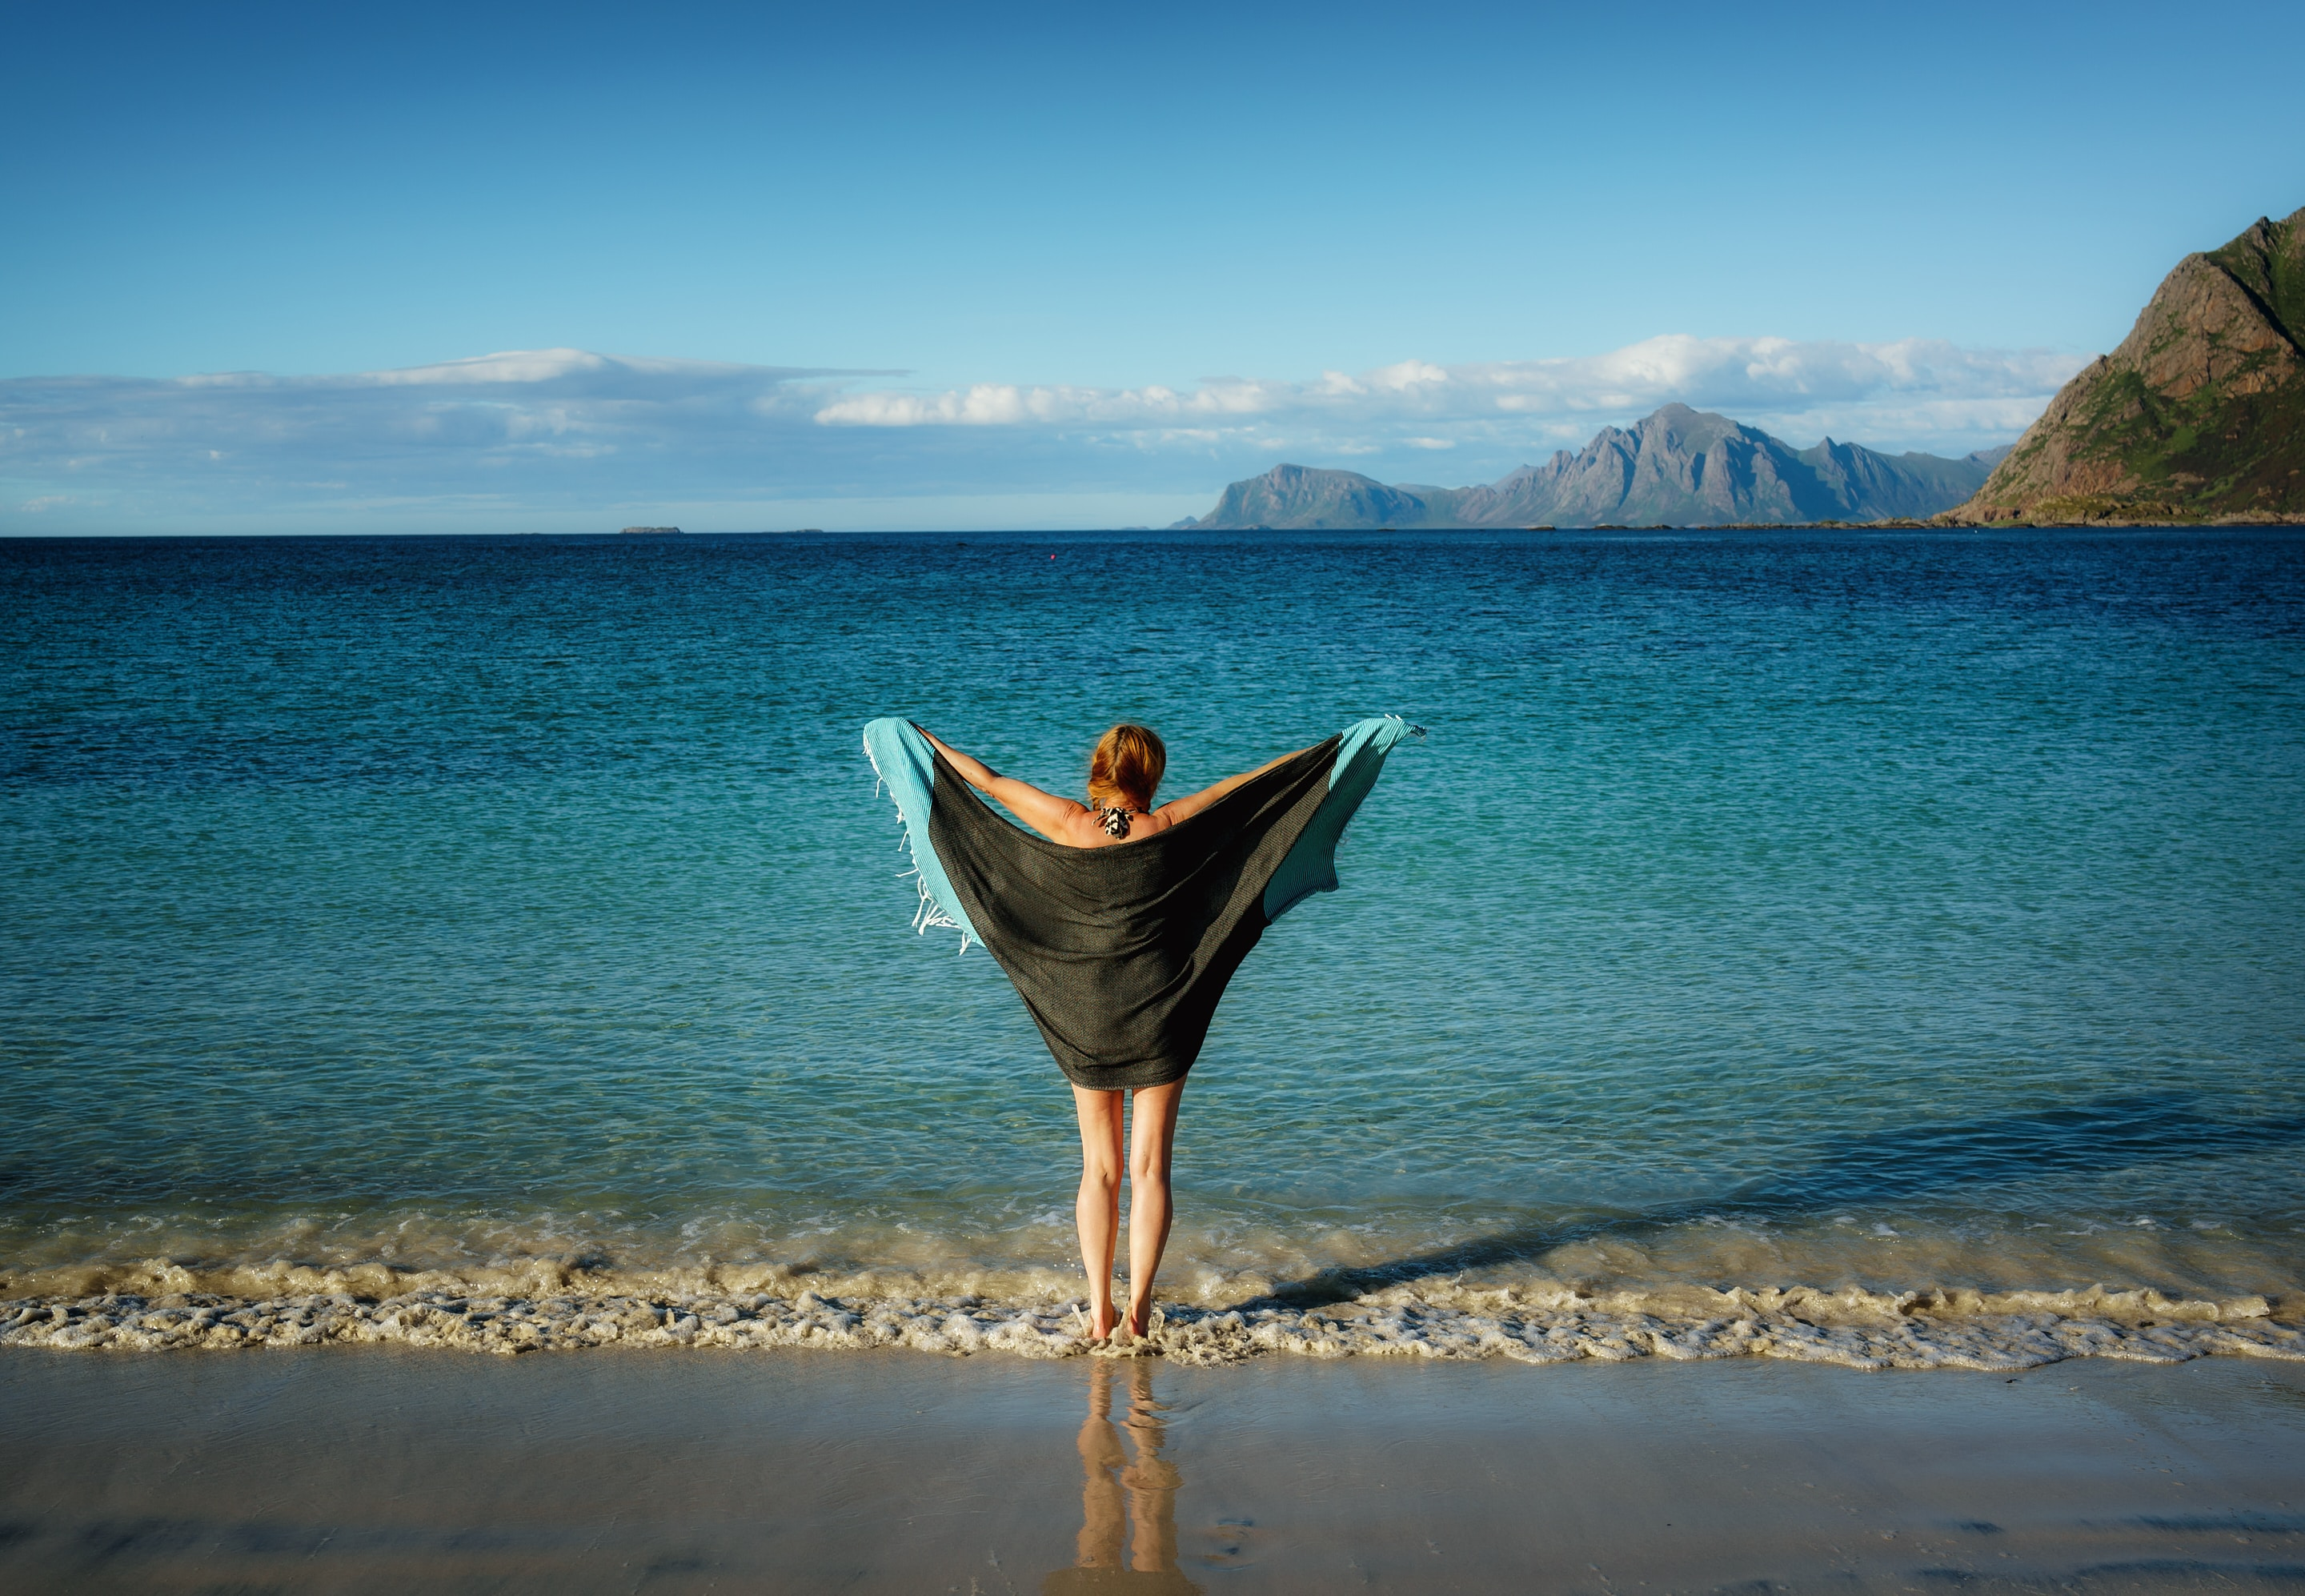 A woman holding a beach towel facing the beach